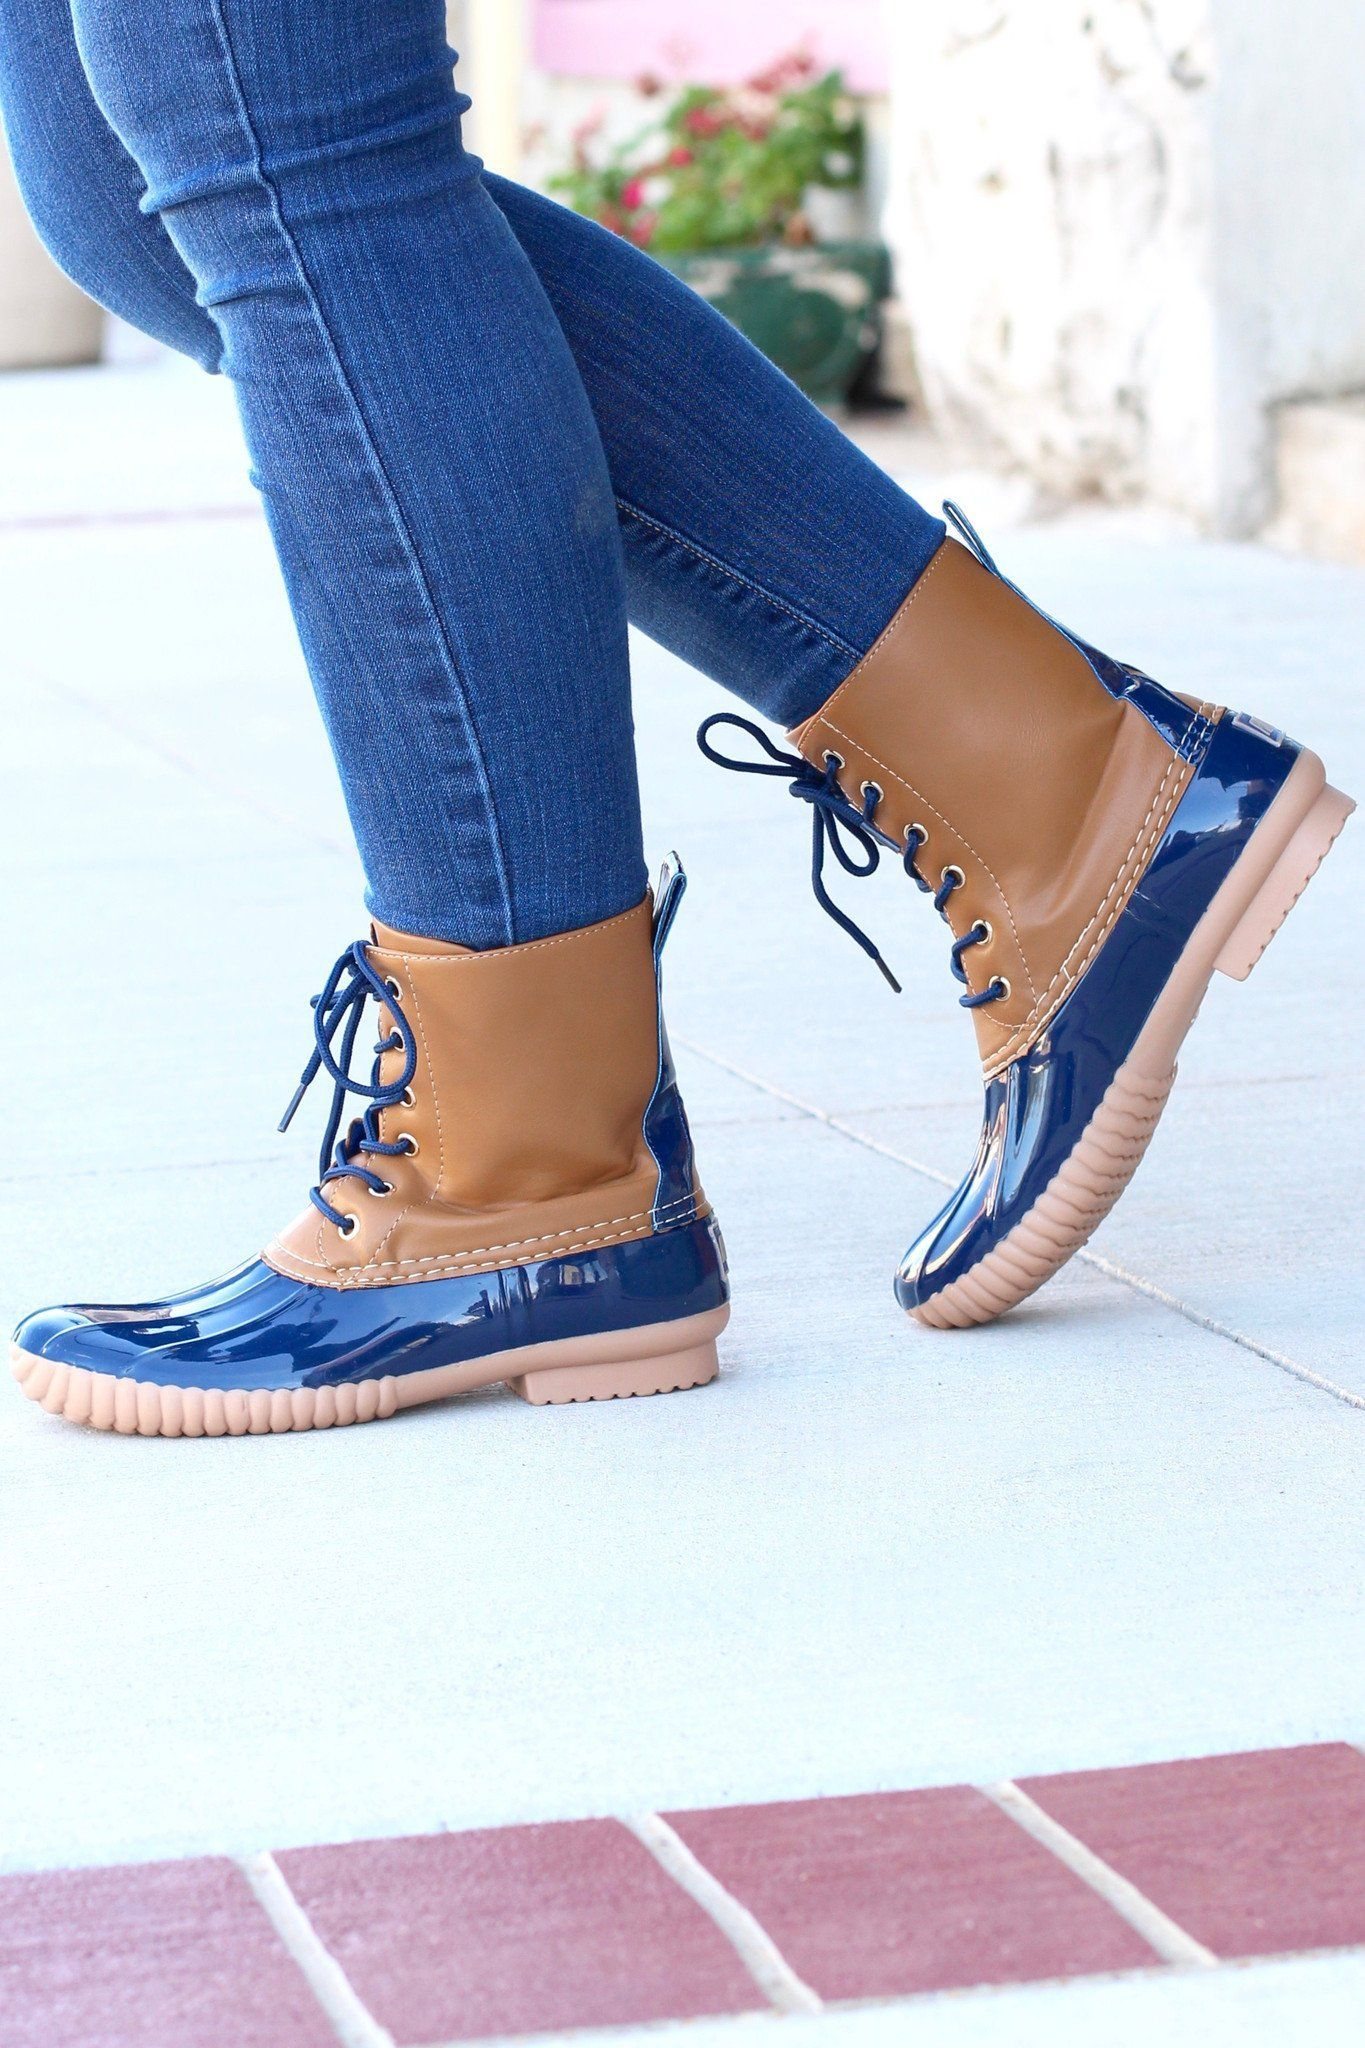 edfe3e03e These classic duck boots are made for damp weather with their one-piece  molded sole